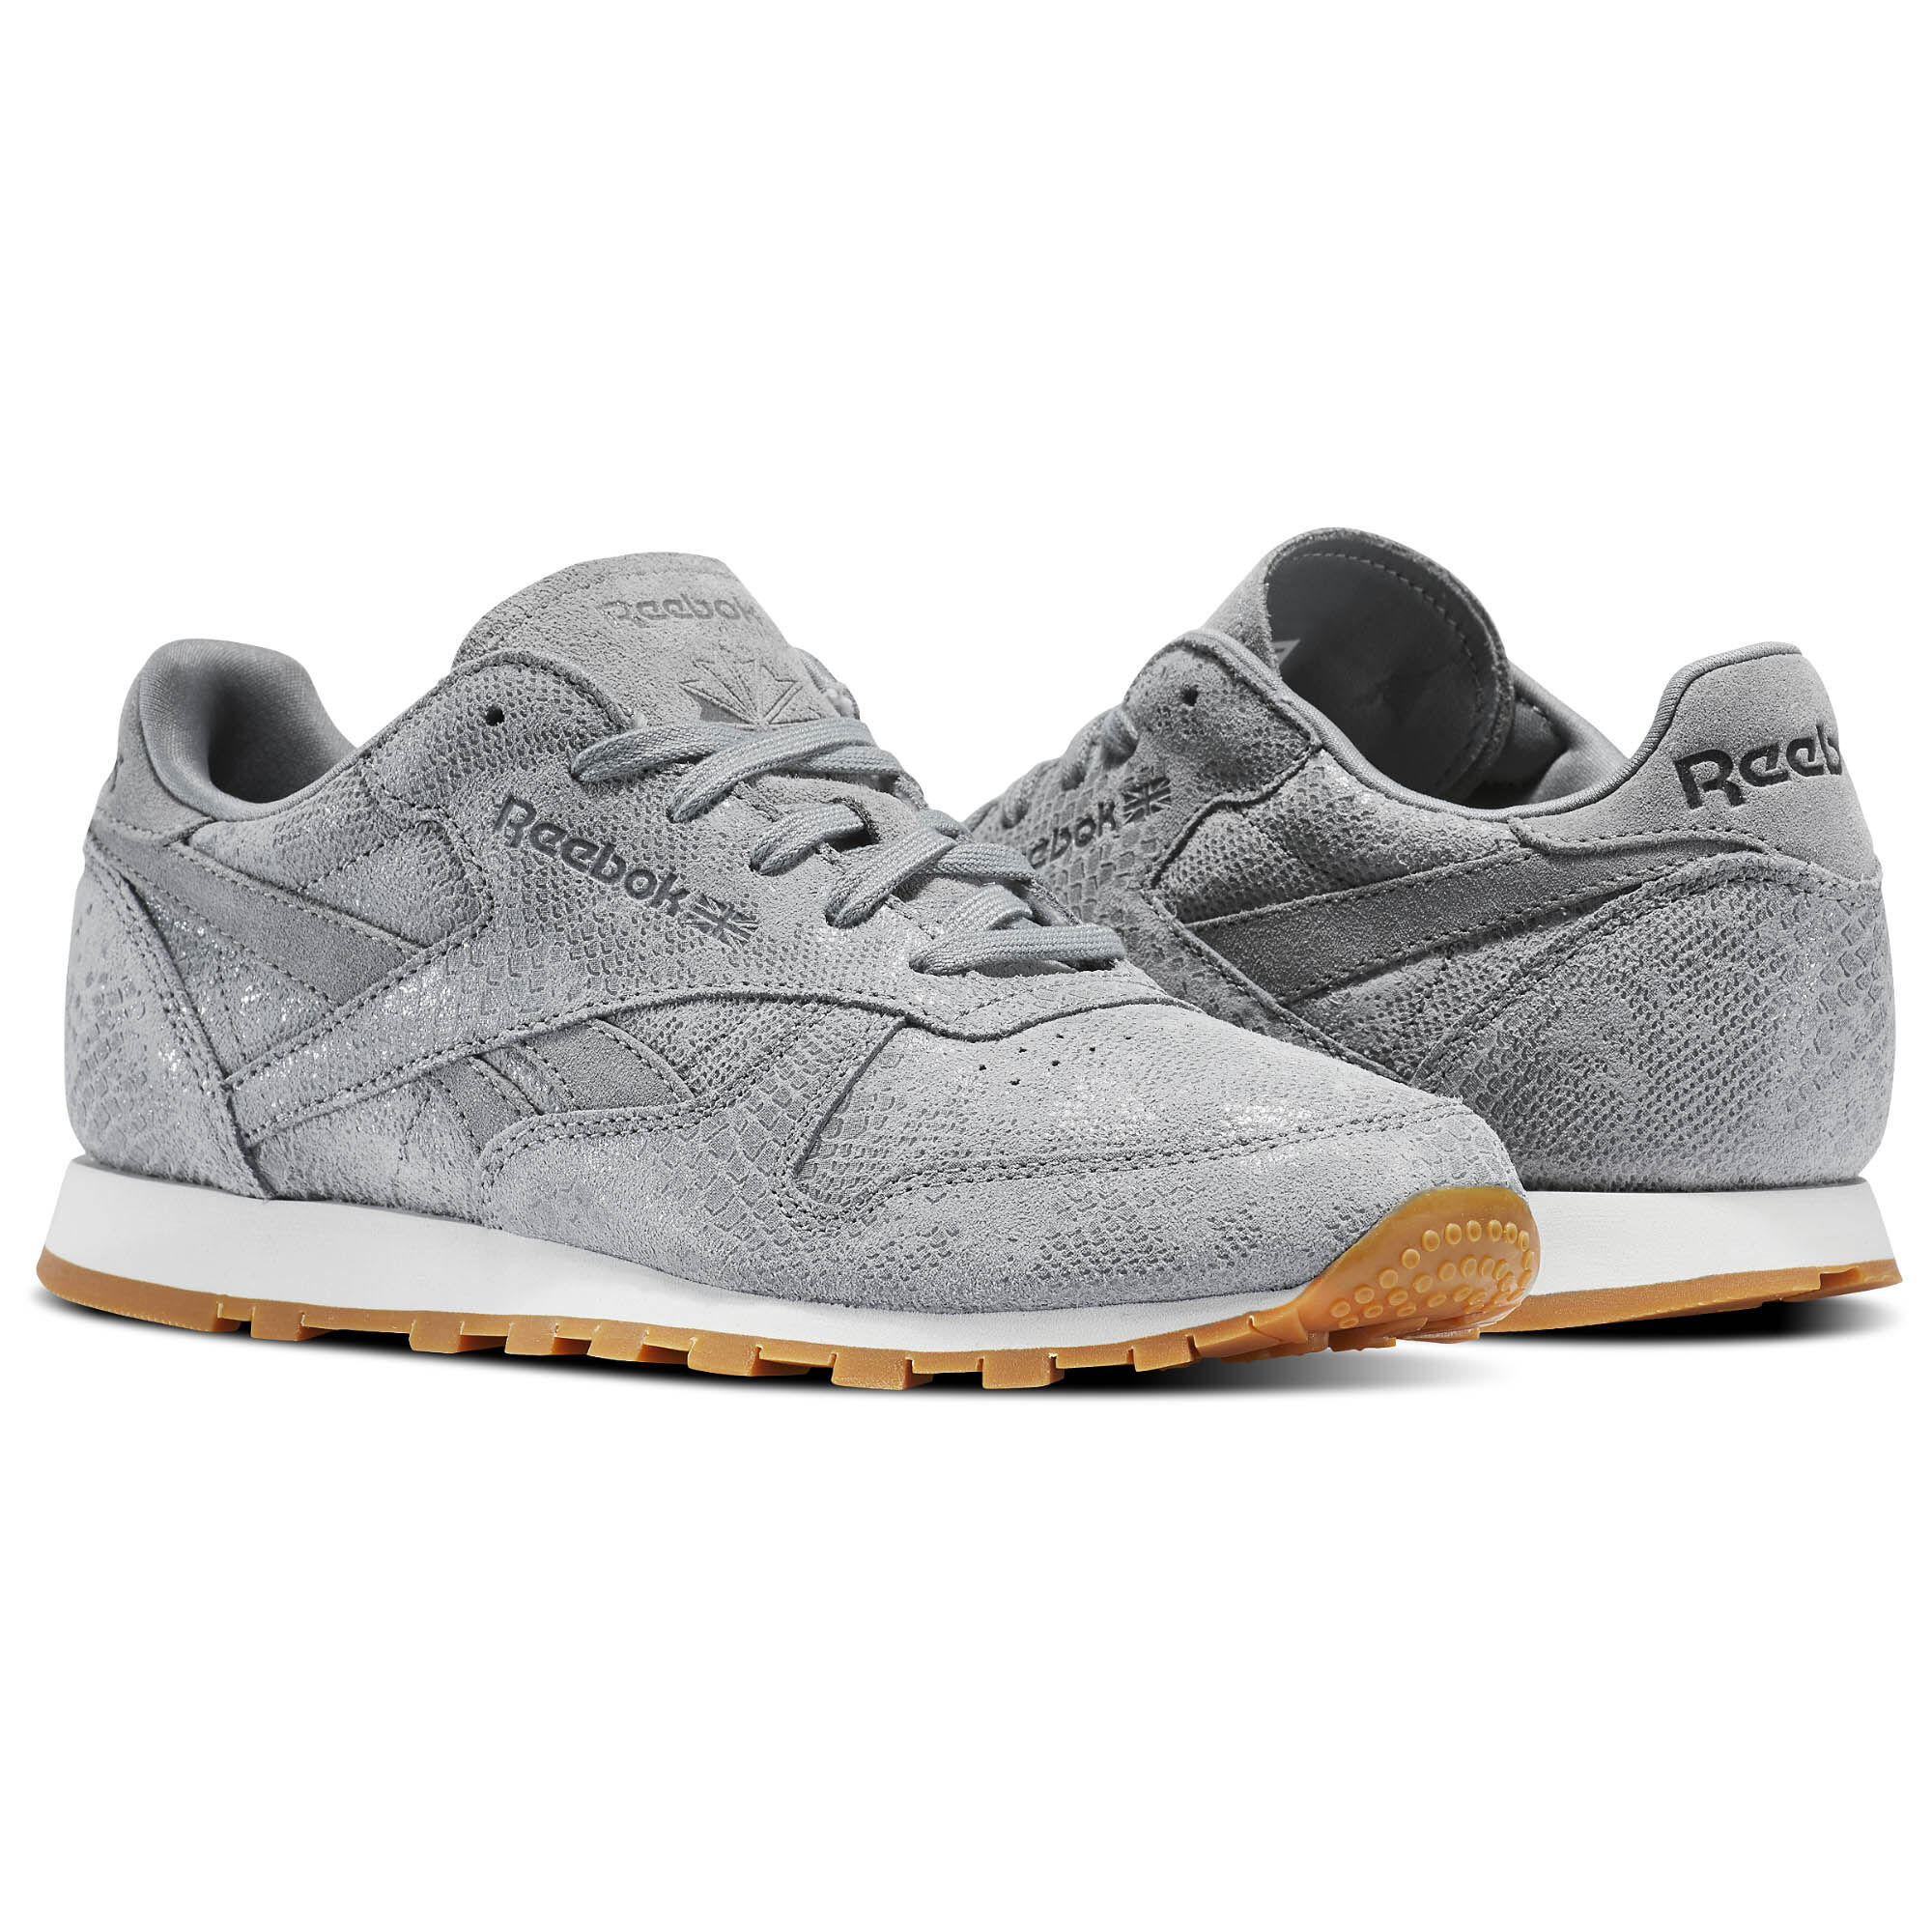 73d8e0f3fe7c5 ... Reebok - Classic Leather Clean Exotics Flint GreyChalkGum BS8228 ...